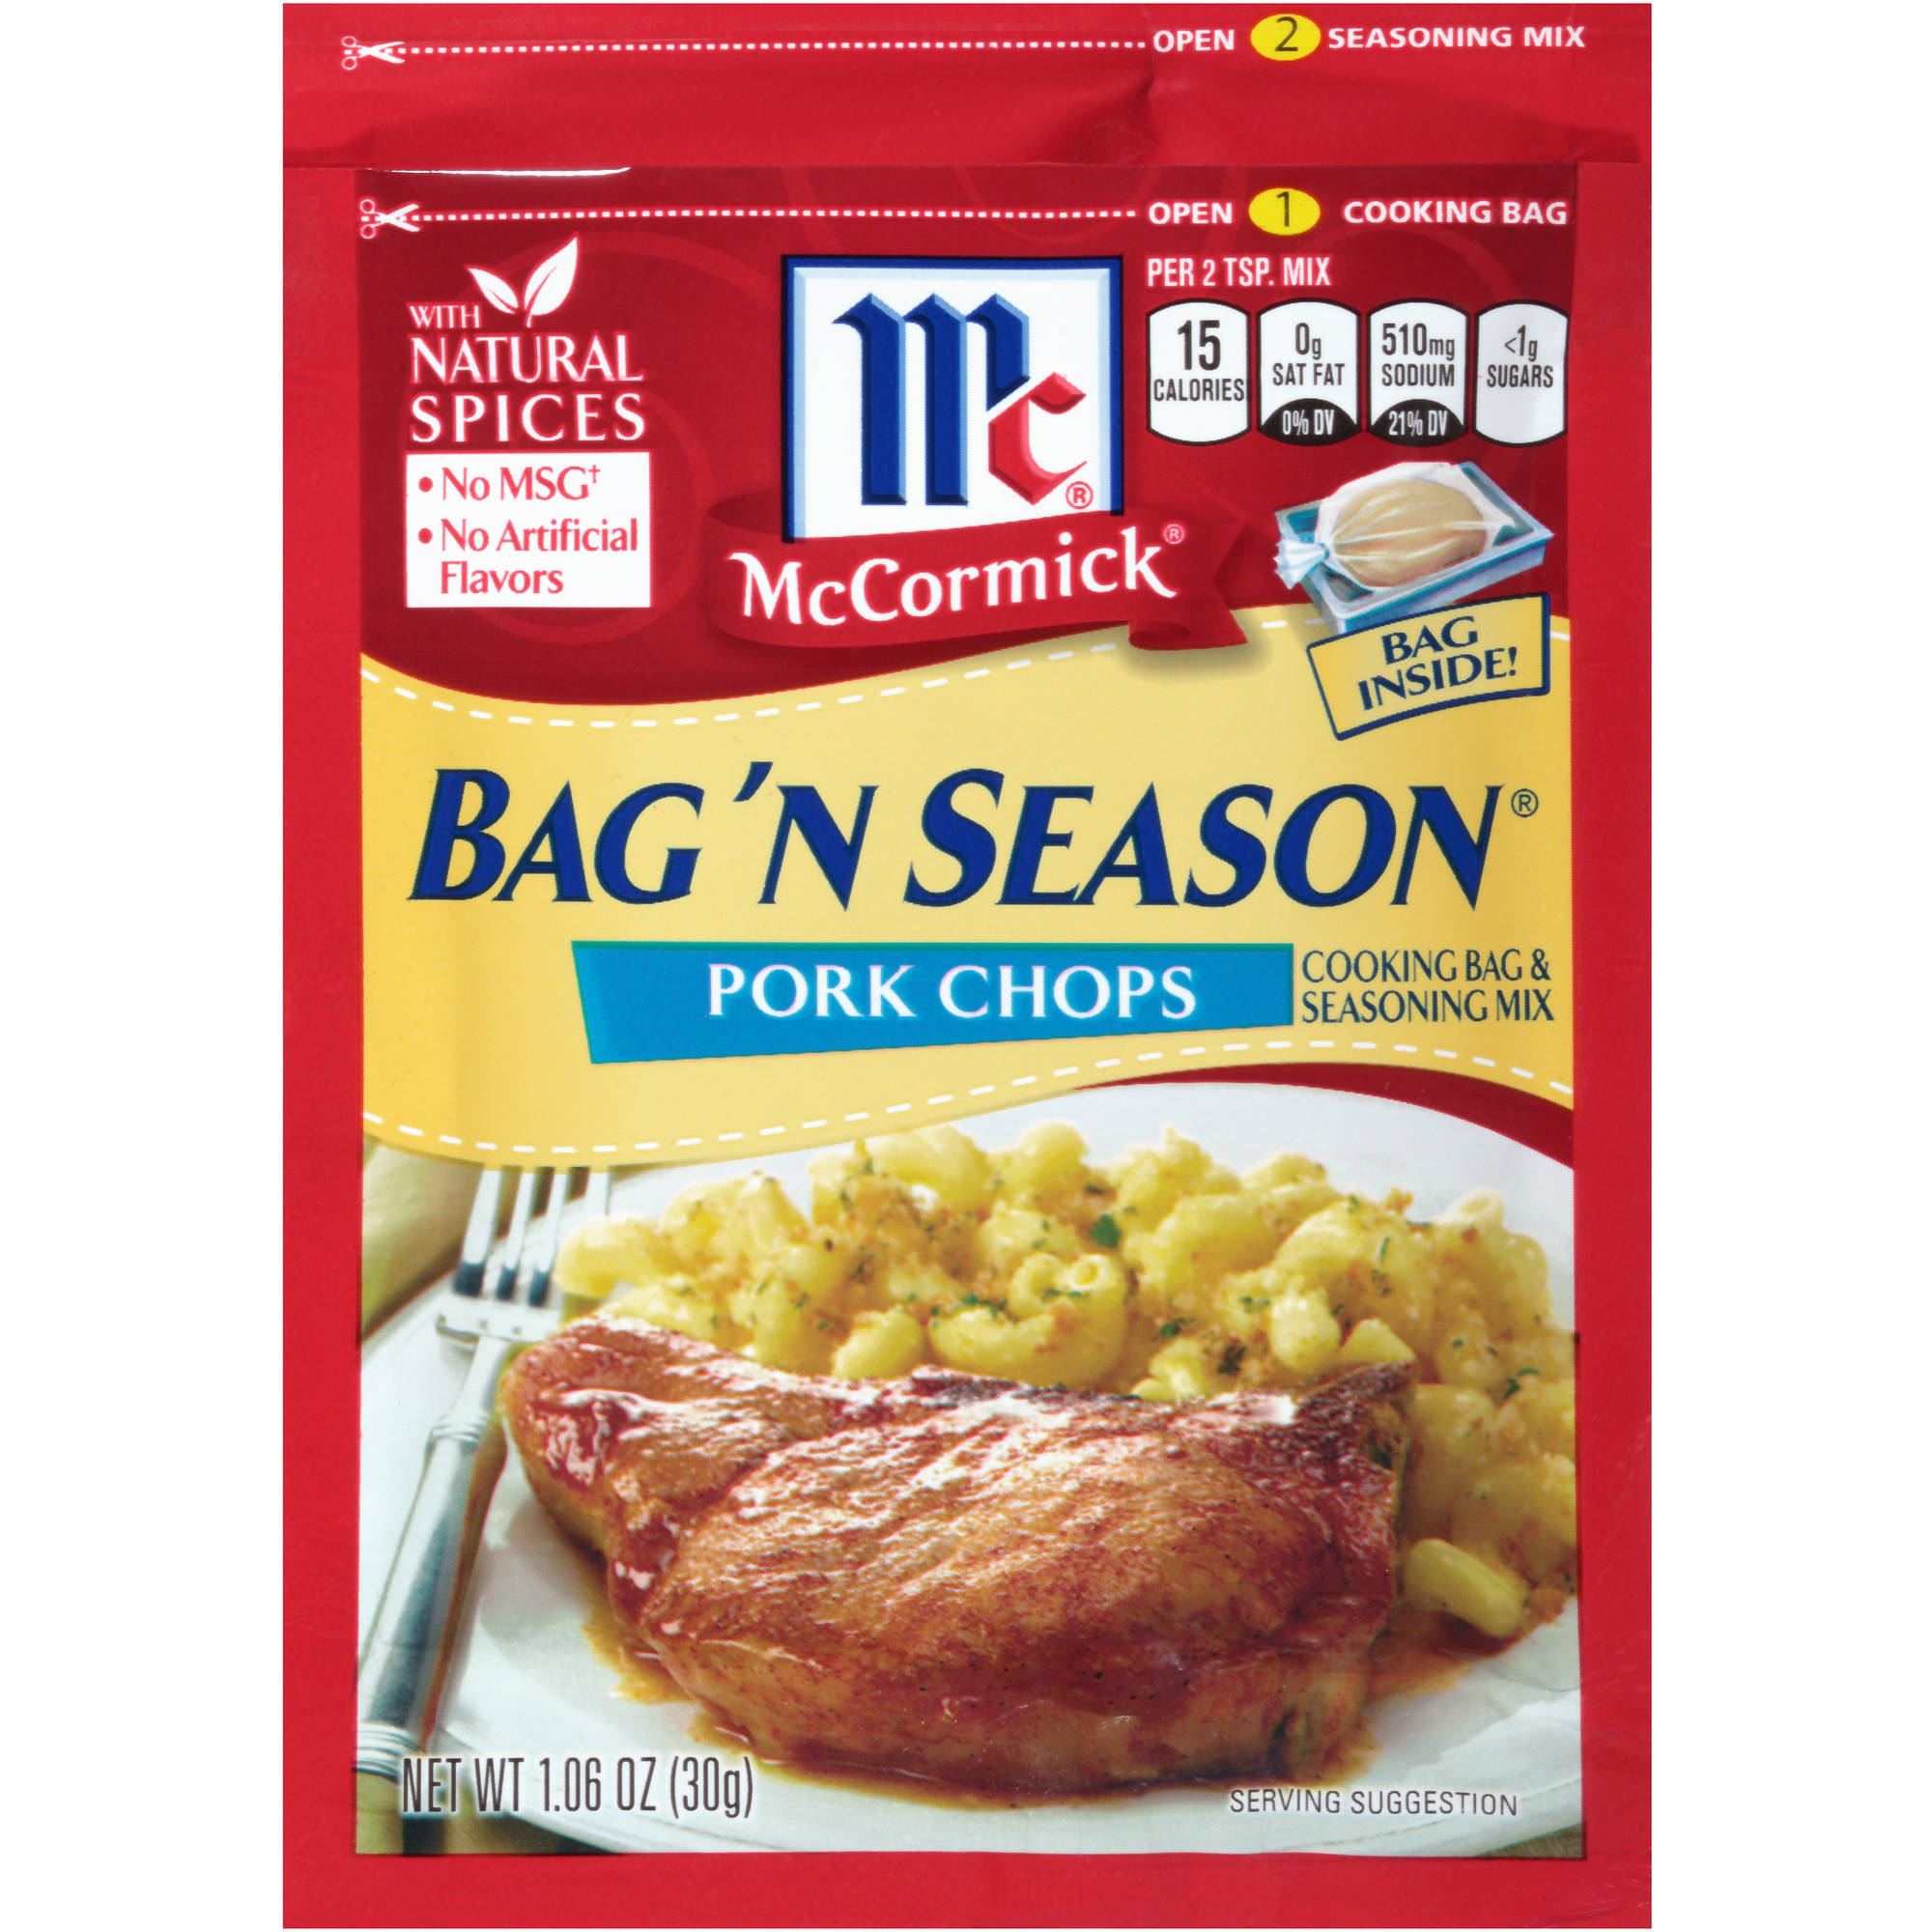 McCormick Bag 'N Season Pork Chops Seasoning Mix & Cooking Bag, 1.06 oz